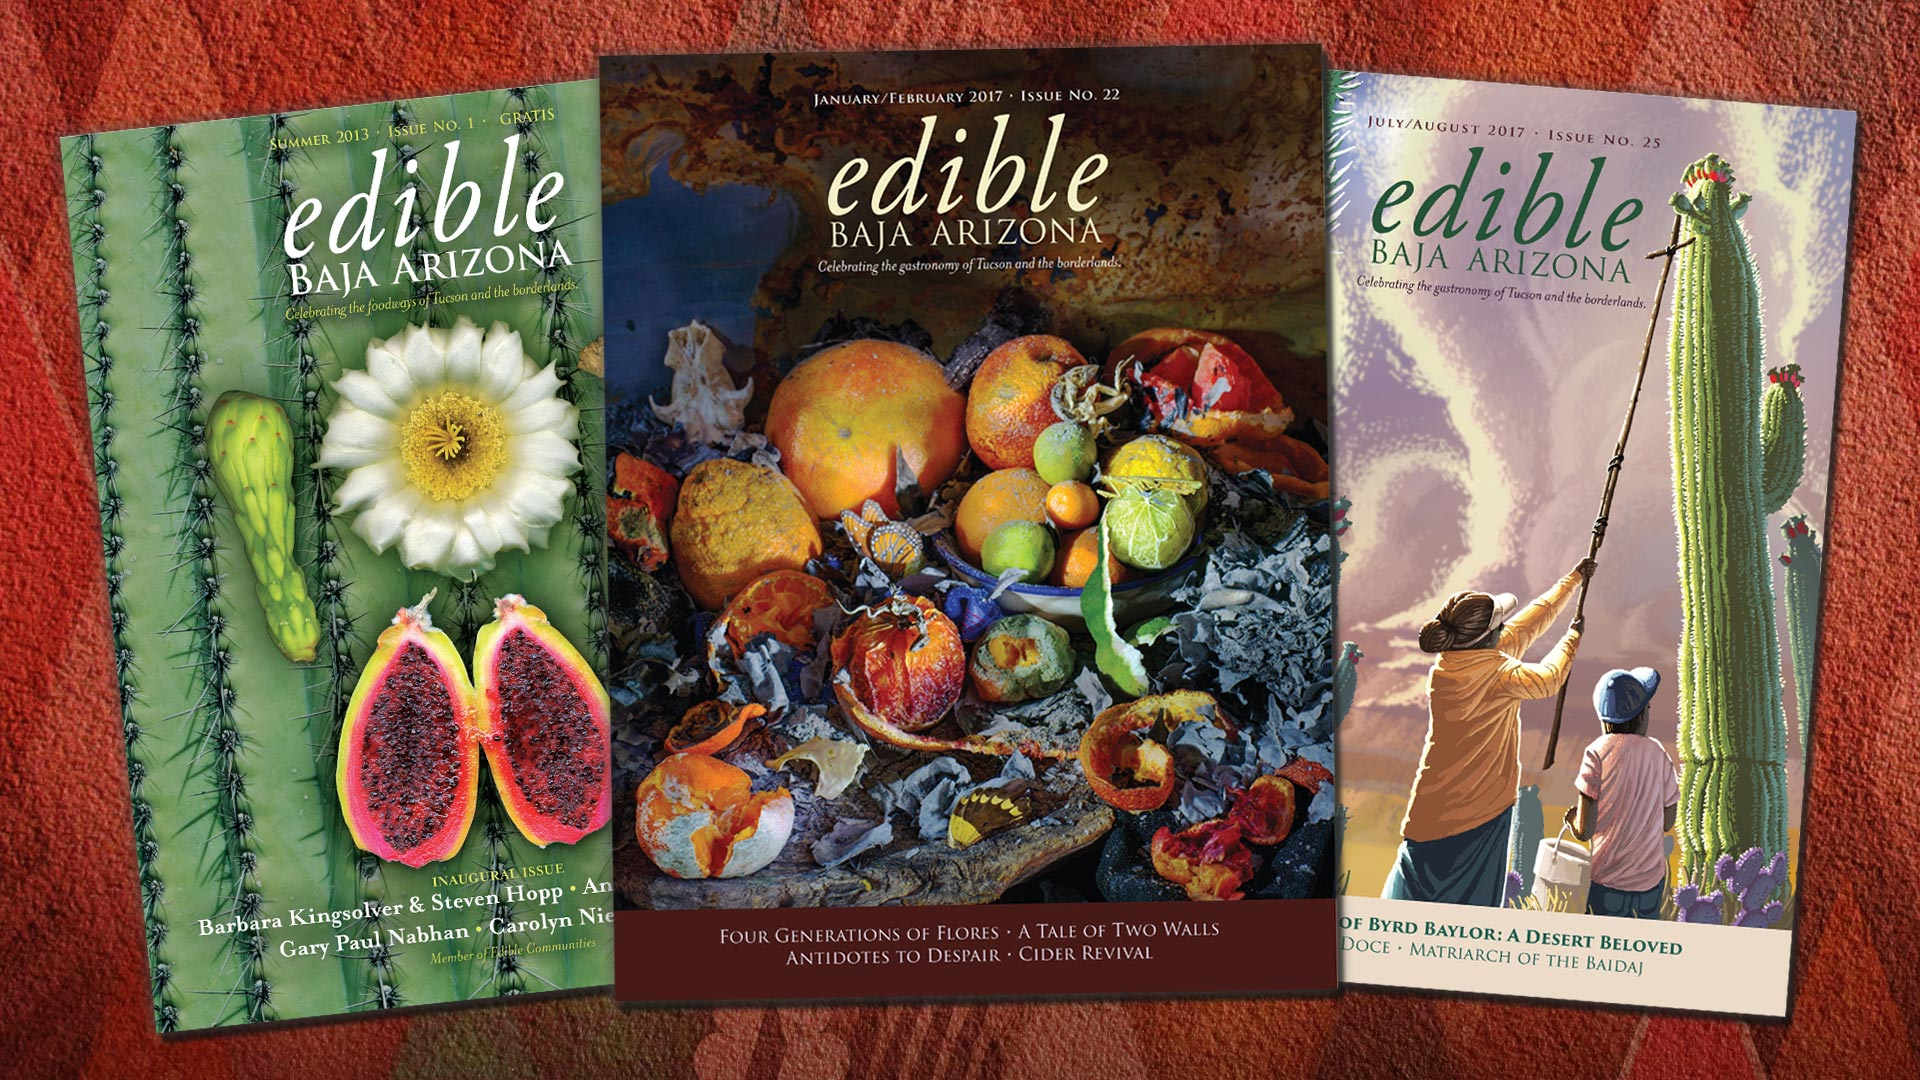 Three covers from Edible Baja Arizona magazine.